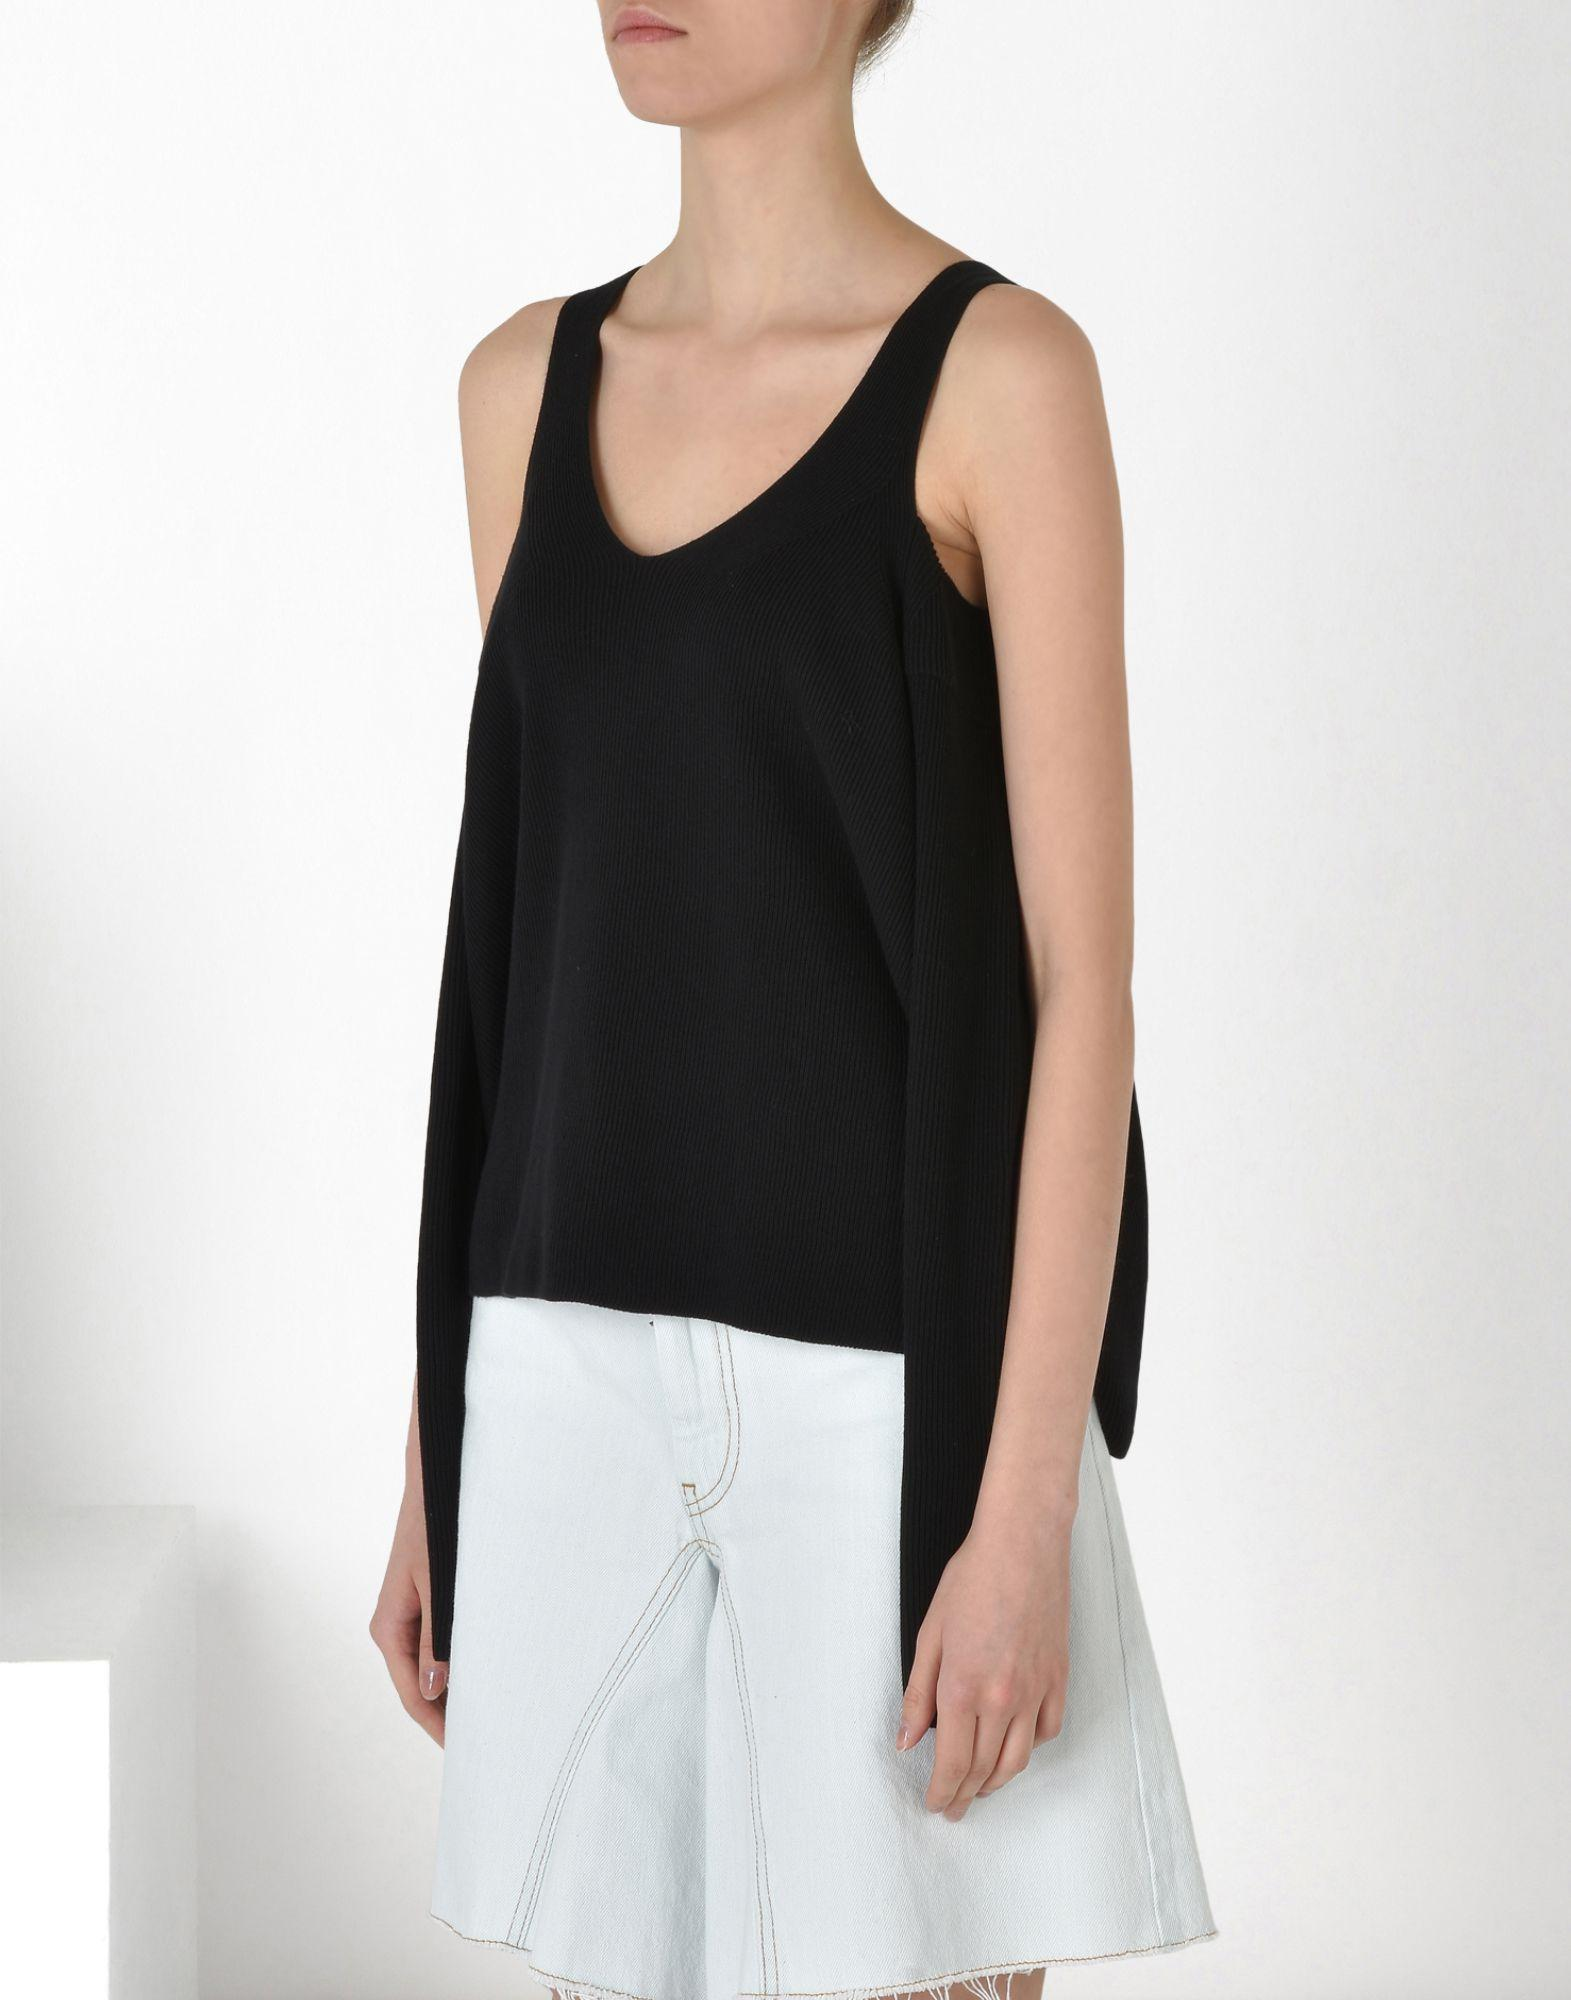 Pull Over Onto Shoulder : Mm by maison martin margiela shoulders out pull over in